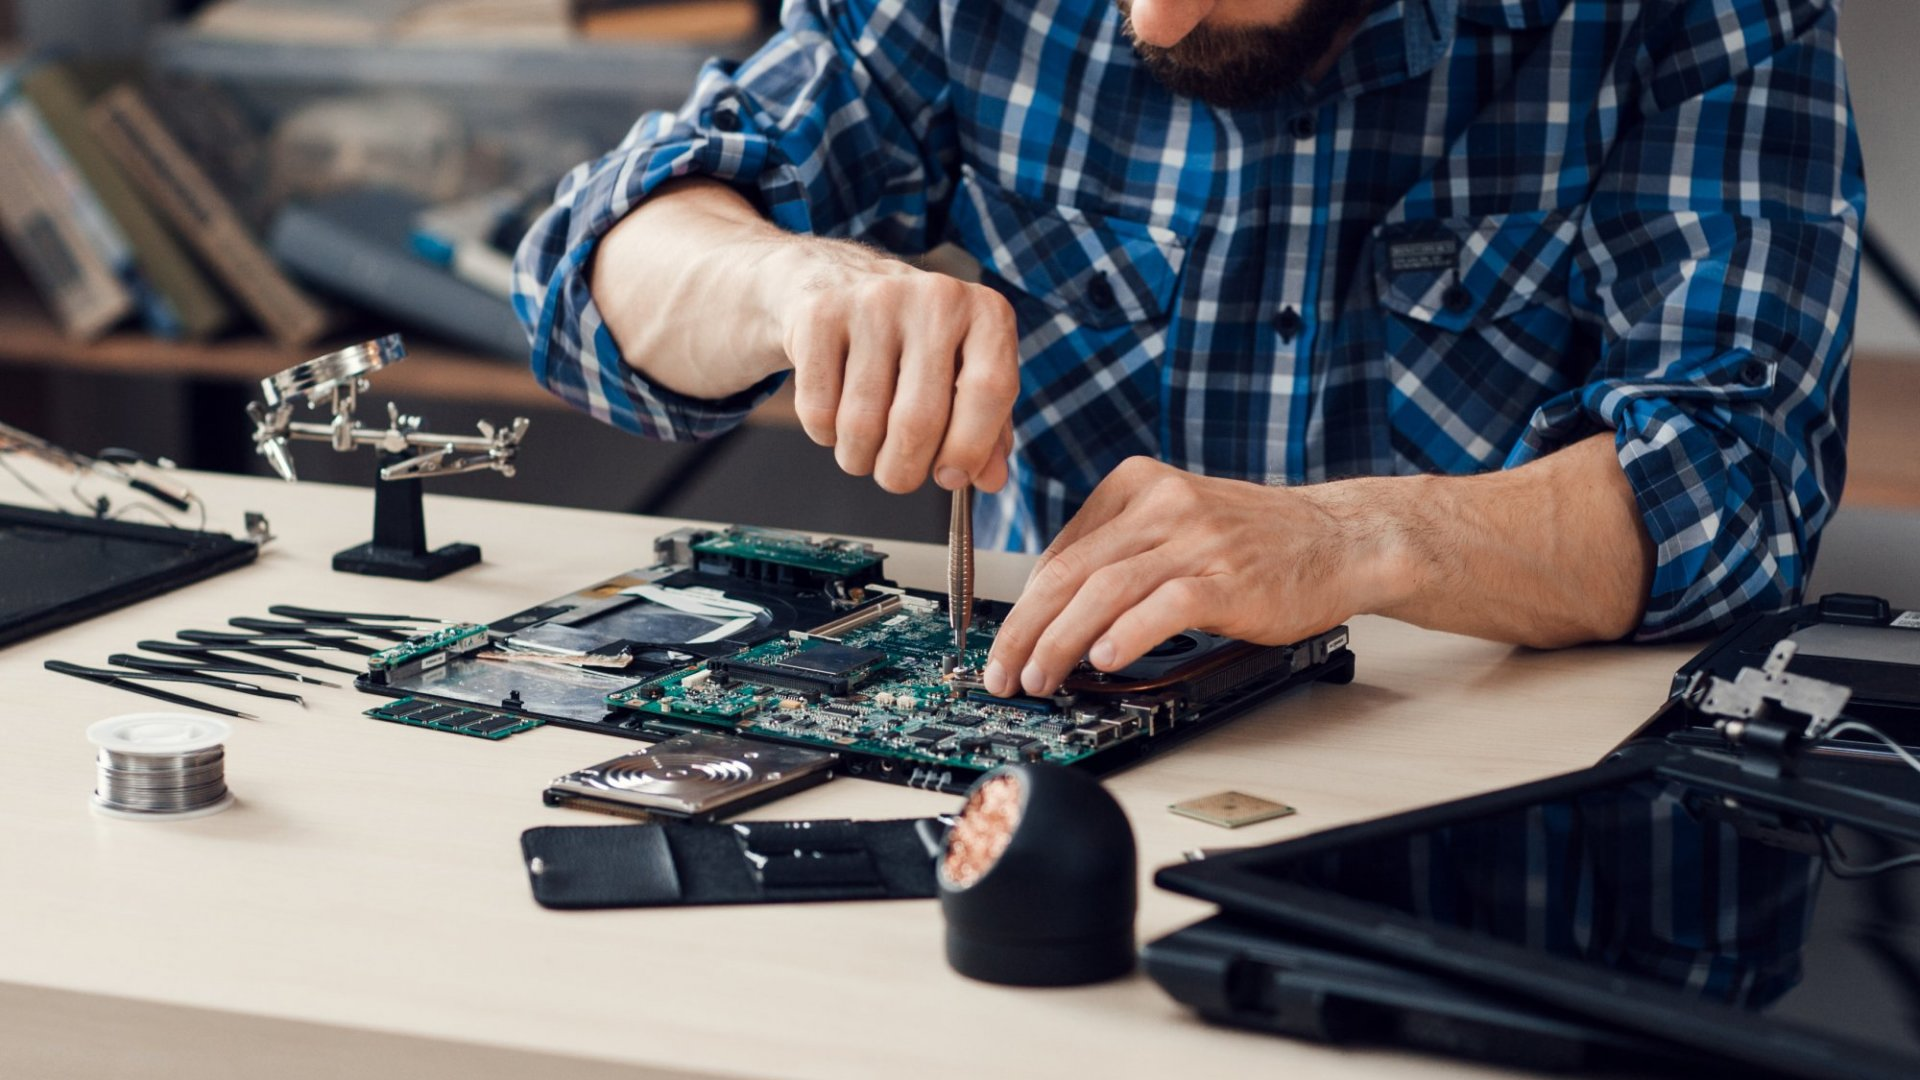 If you want to learn how to solve problems like an engineer, try taking things apart and putting them back together again.